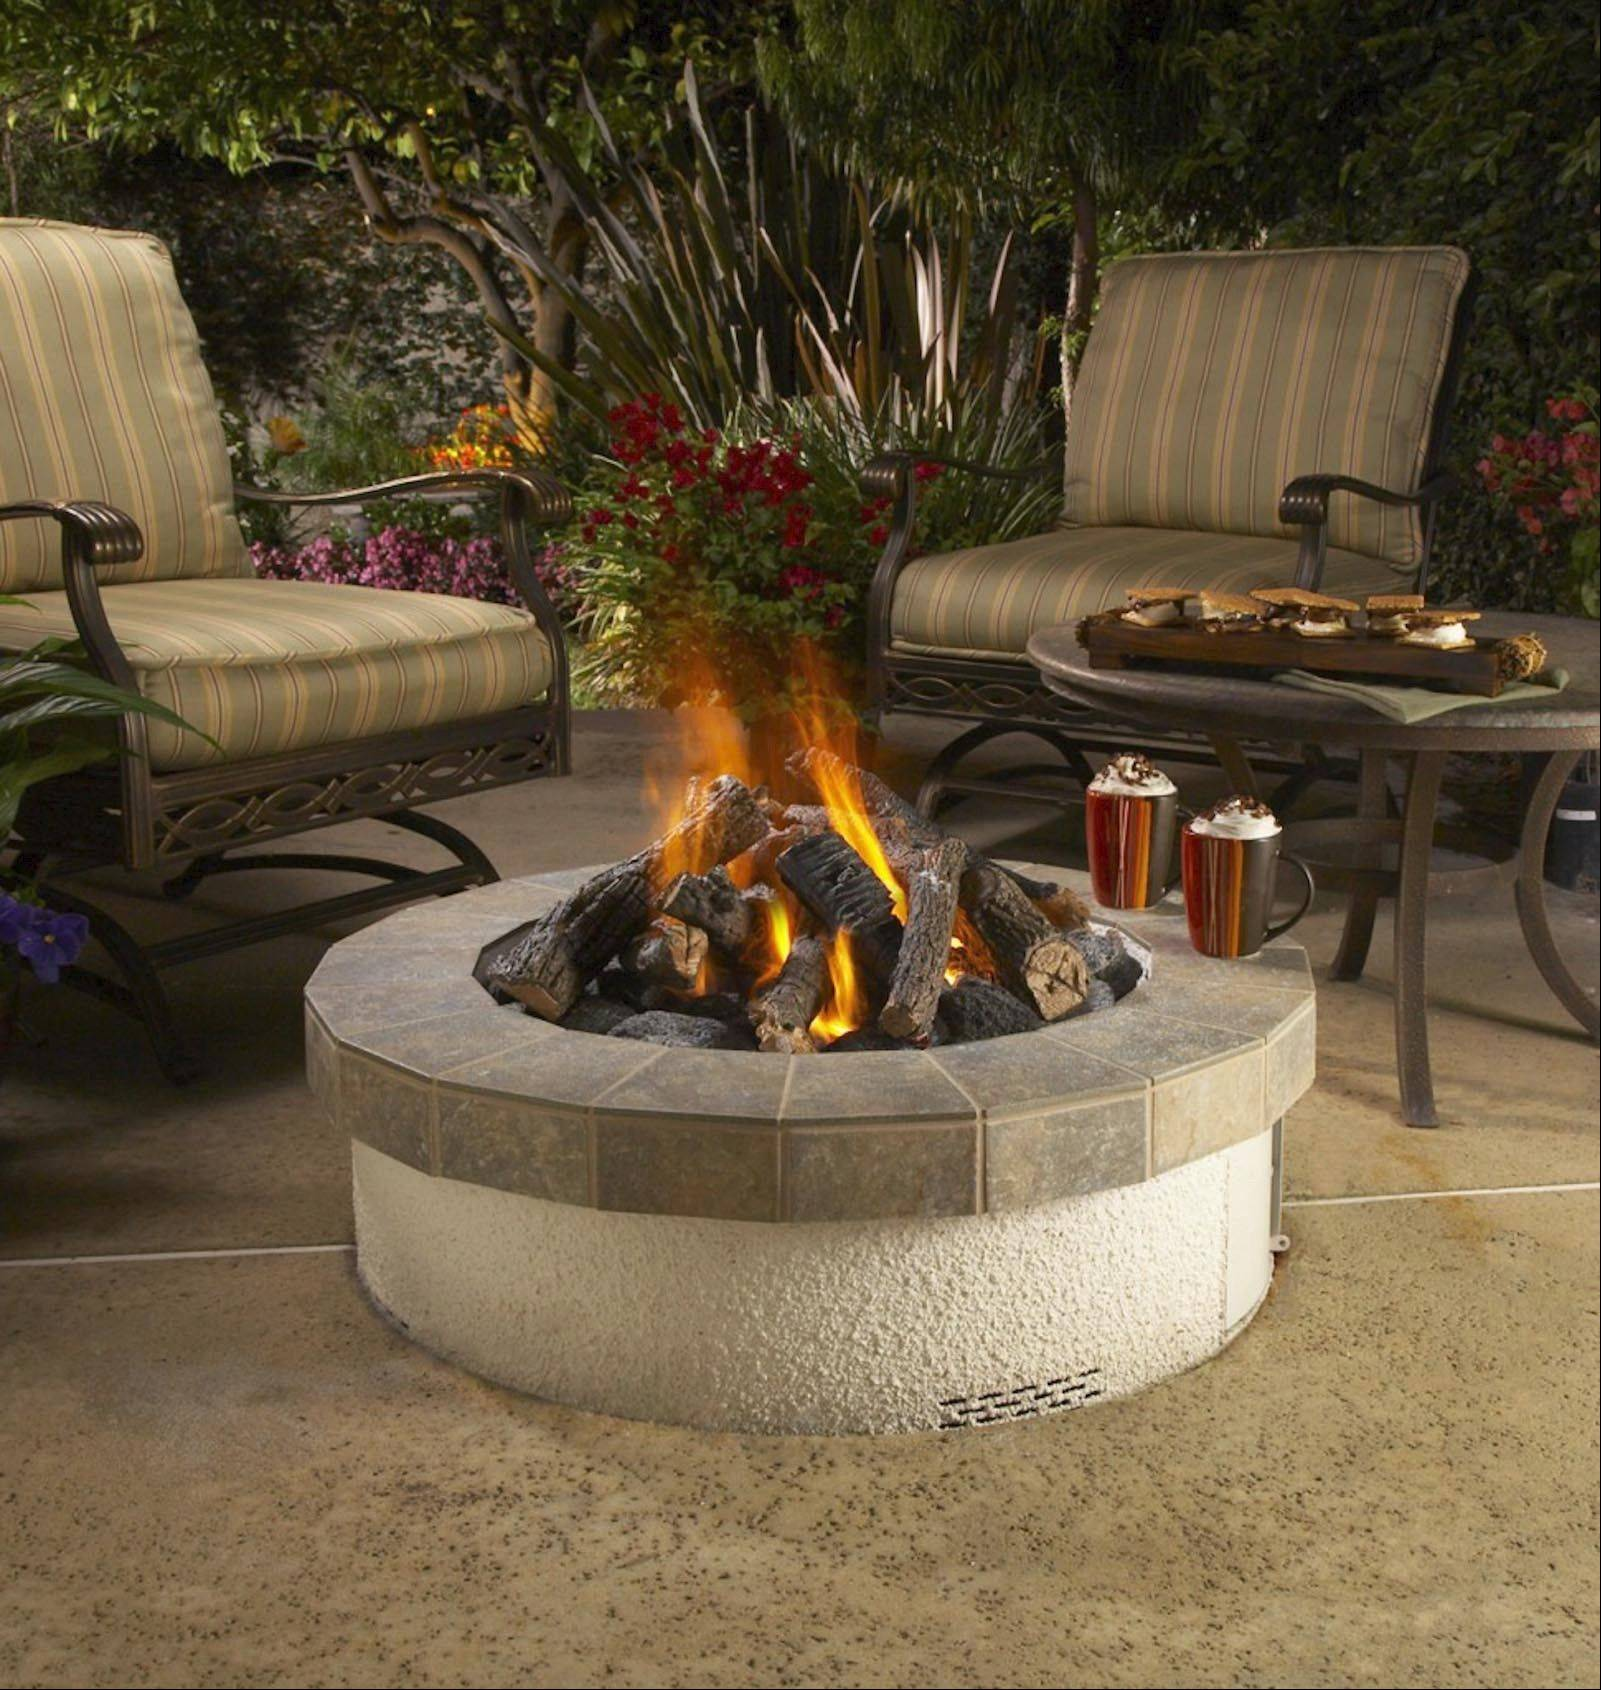 Some fire pits are manufactured as self-contained units easily inserted into paving or deck.